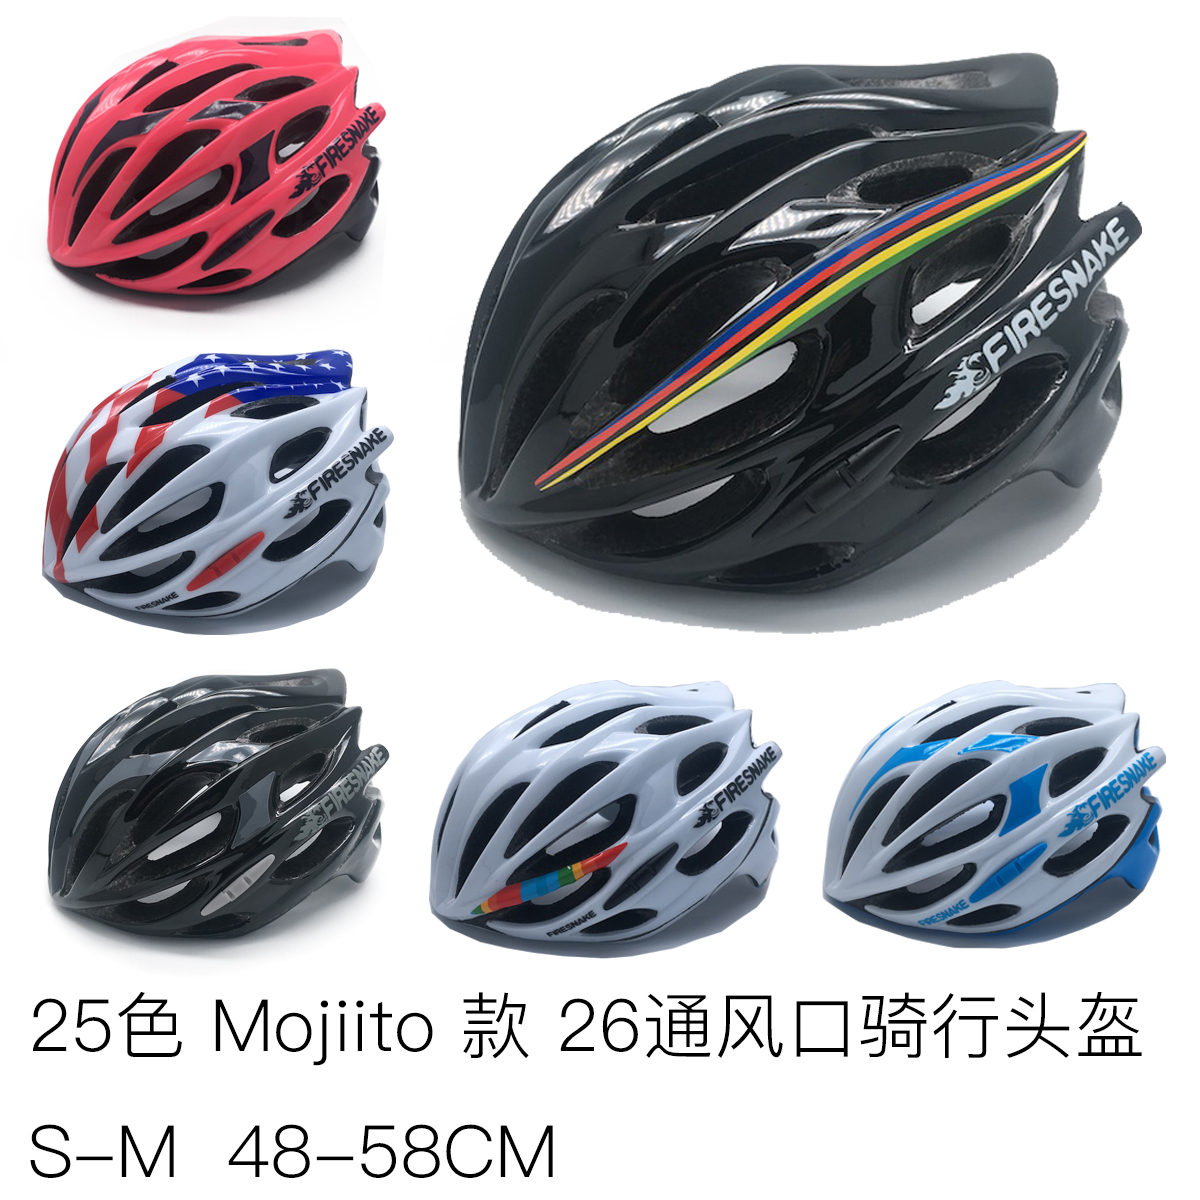 Mojito Pudong bicycle mountain bike men's ultra light pneumatic road bike female broken wind ring riding helmet